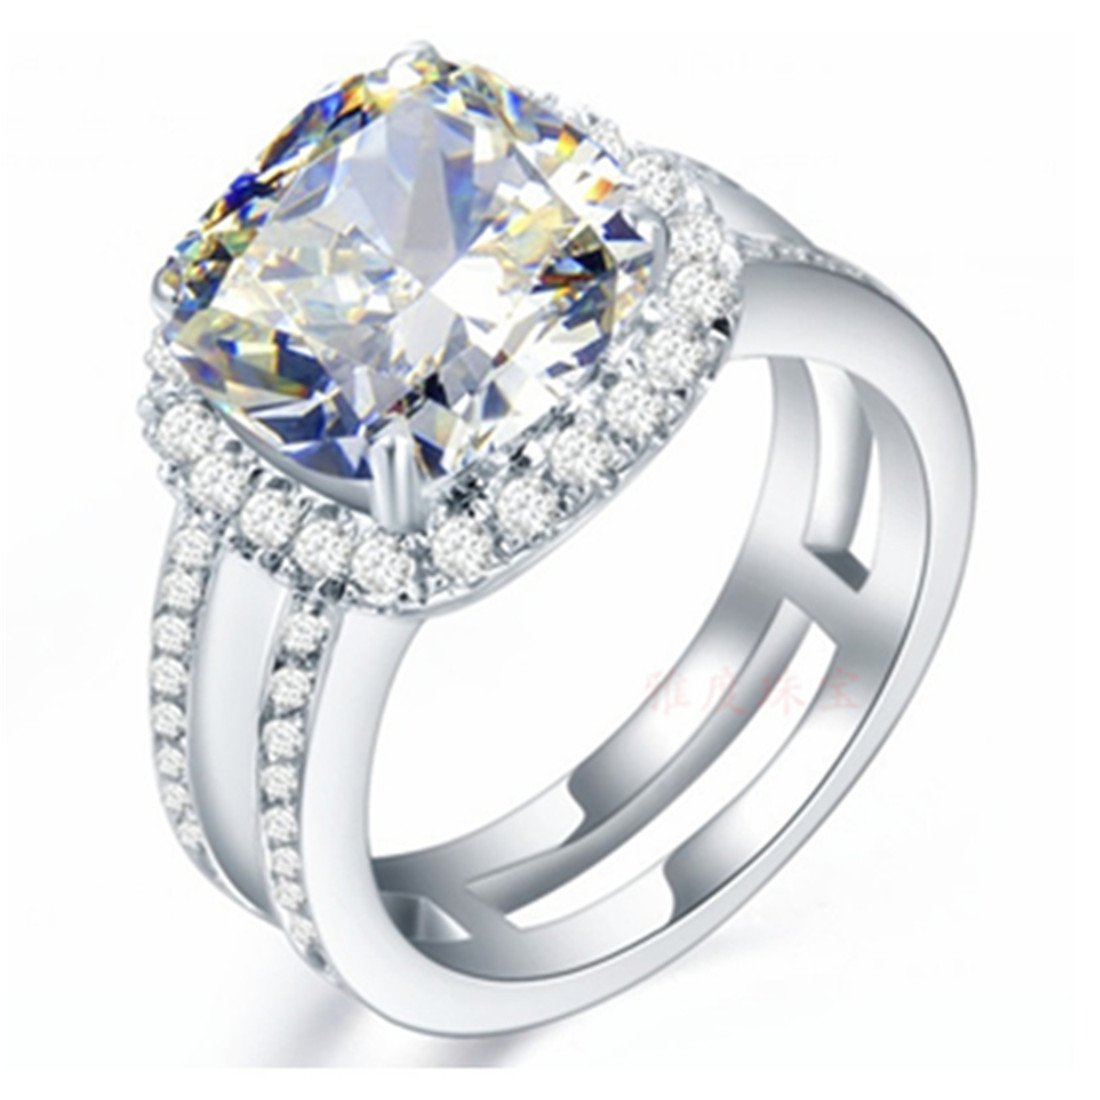 3CT Cushion Jewelry Micro Paved Engagement Ring 925 Sterling Silver NSCD Simulated Diamond for Women